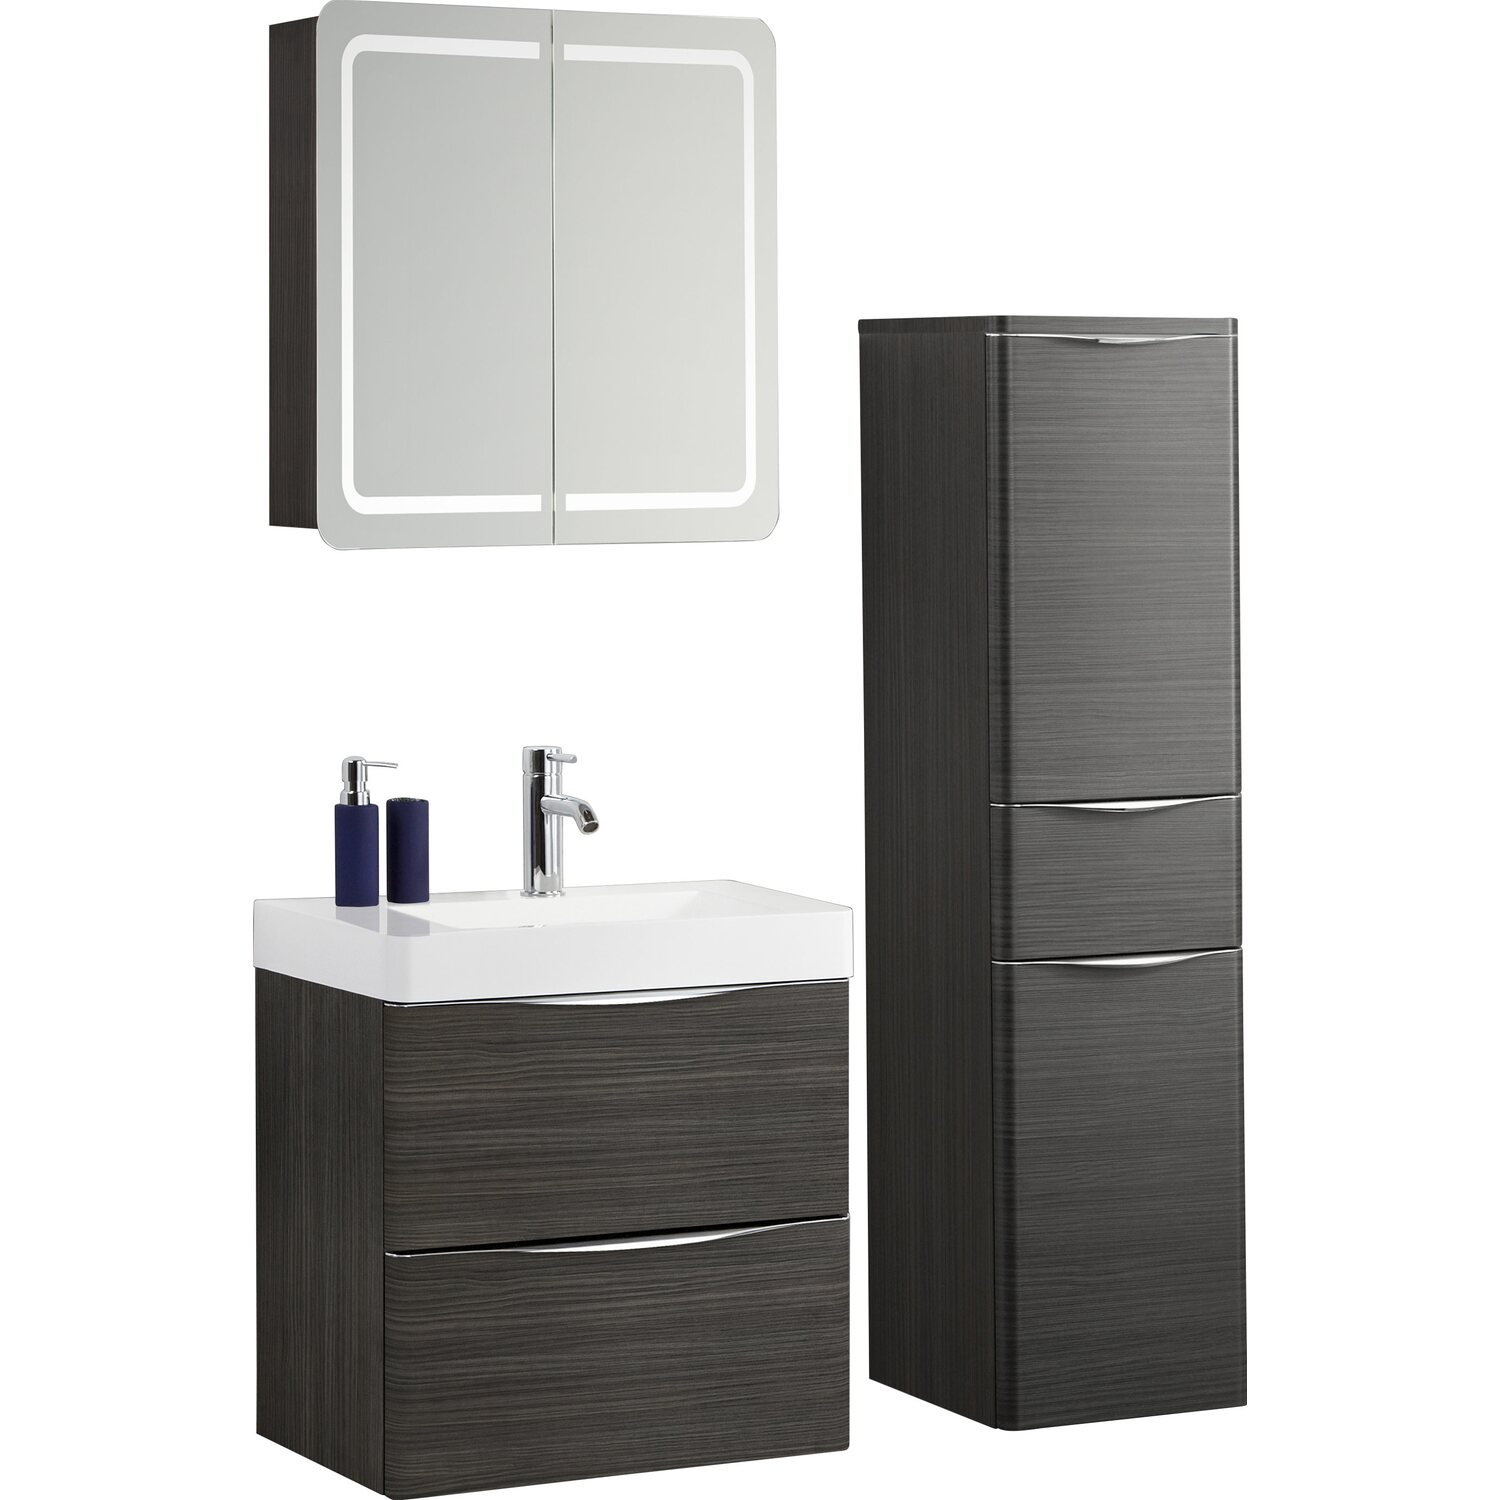 scanbad badm bel set 60 cm mit spiegelschrank samba hacienda braun 3 teilig kaufen bei obi. Black Bedroom Furniture Sets. Home Design Ideas